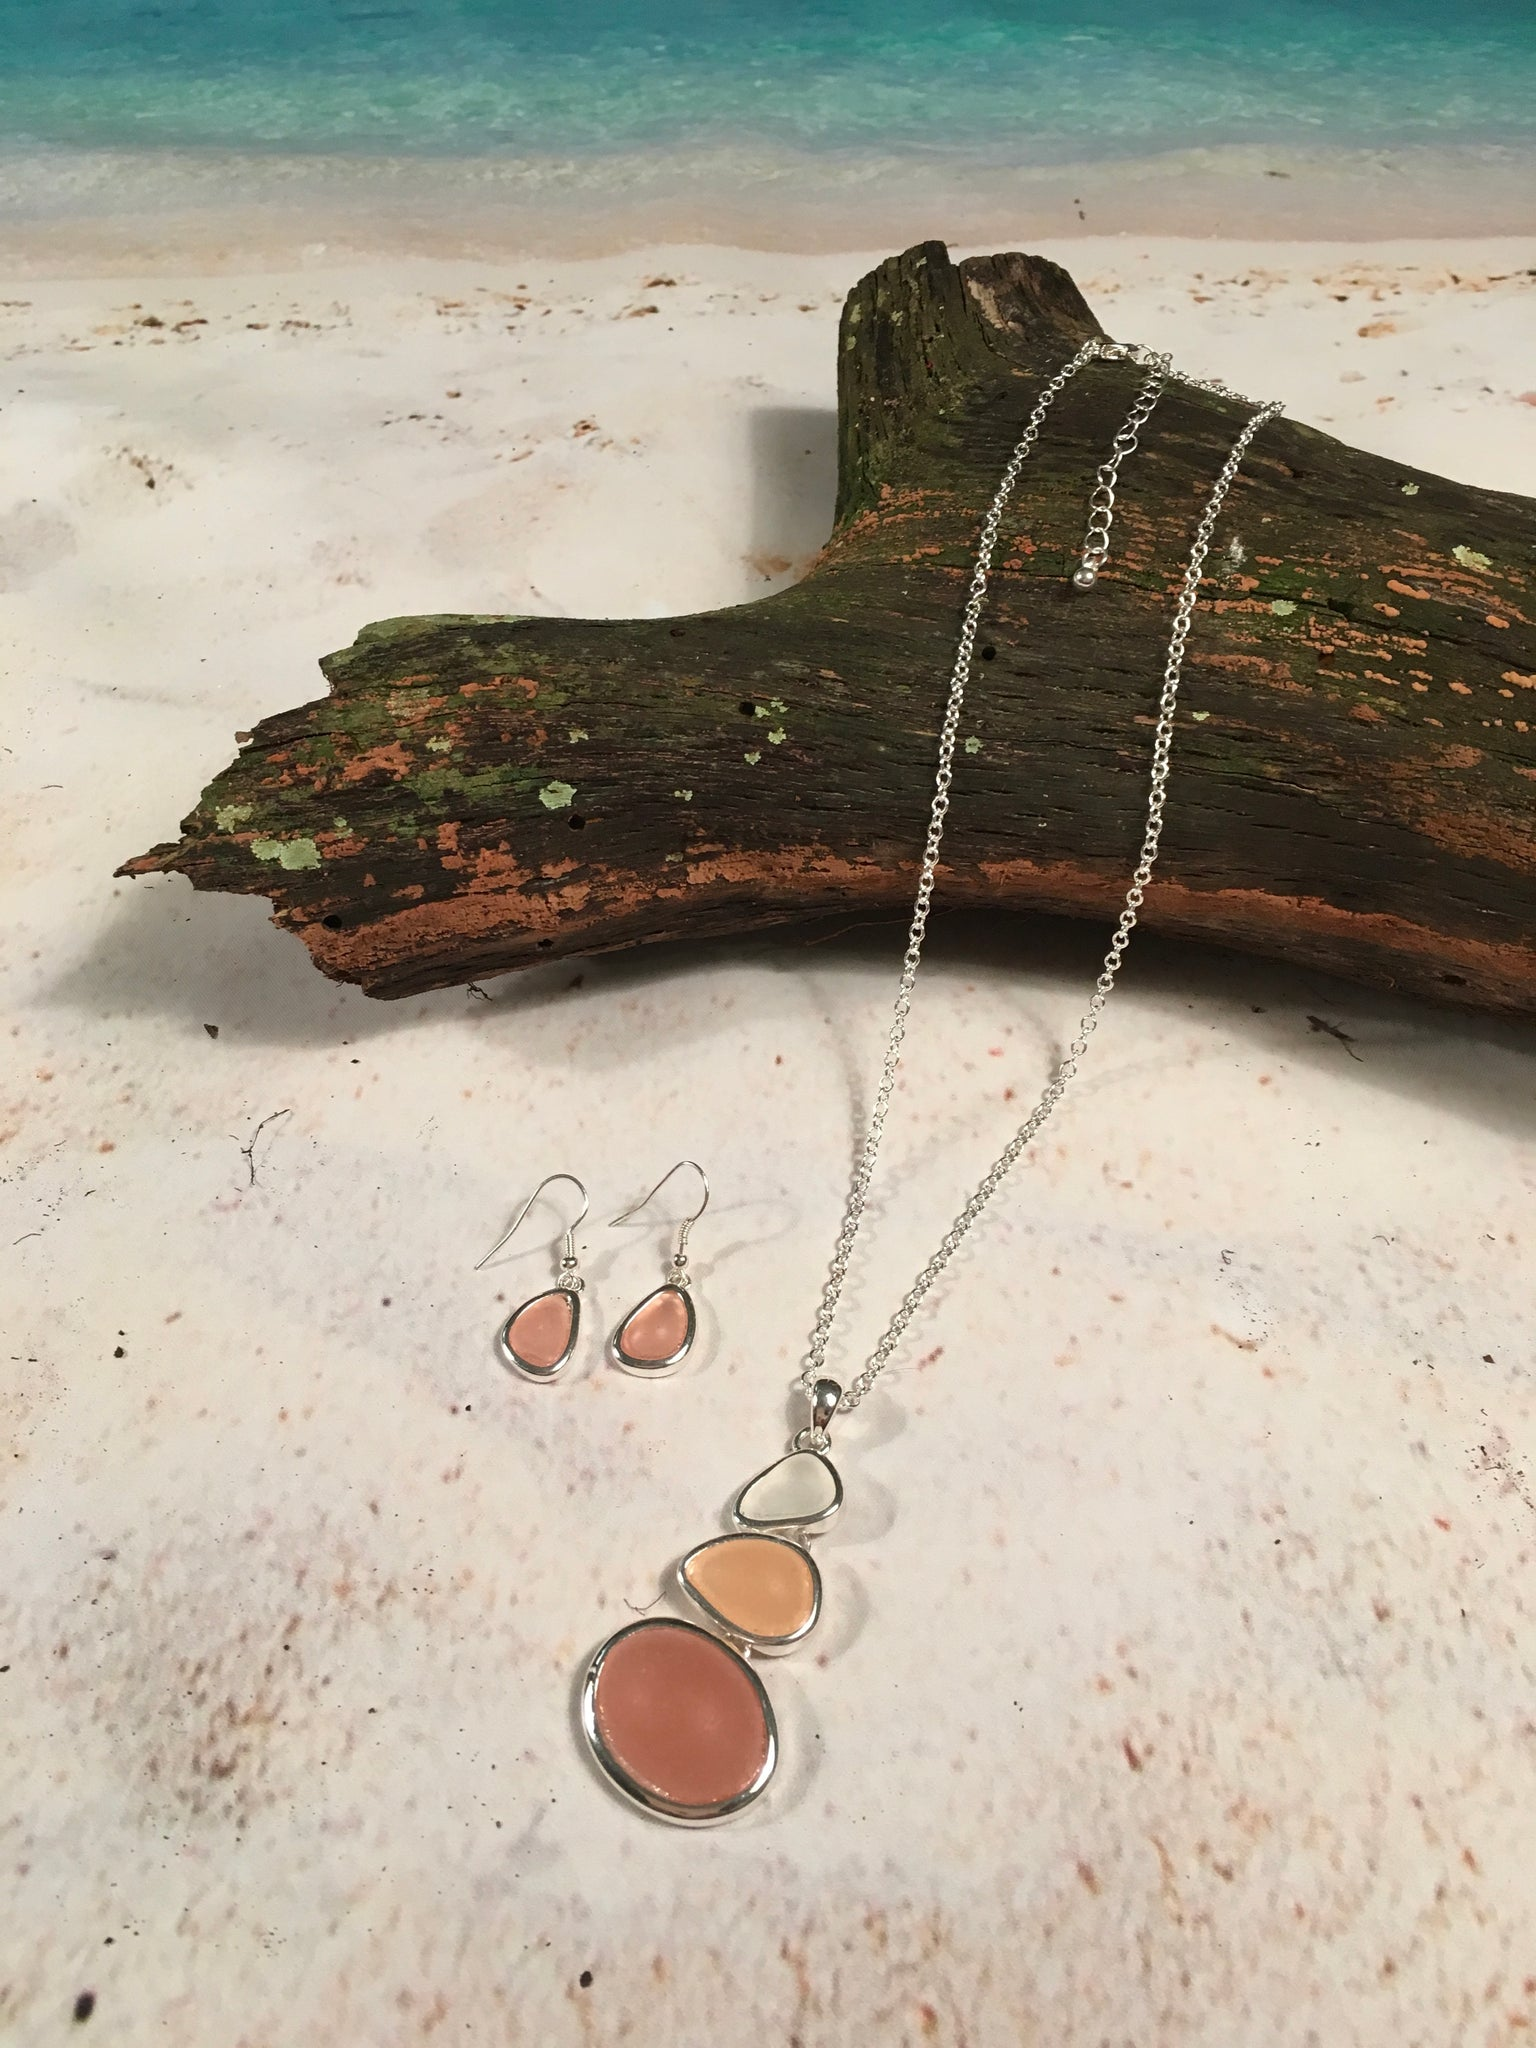 Sea Glass Pendant Necklace & Earrings Set In Coral Shades